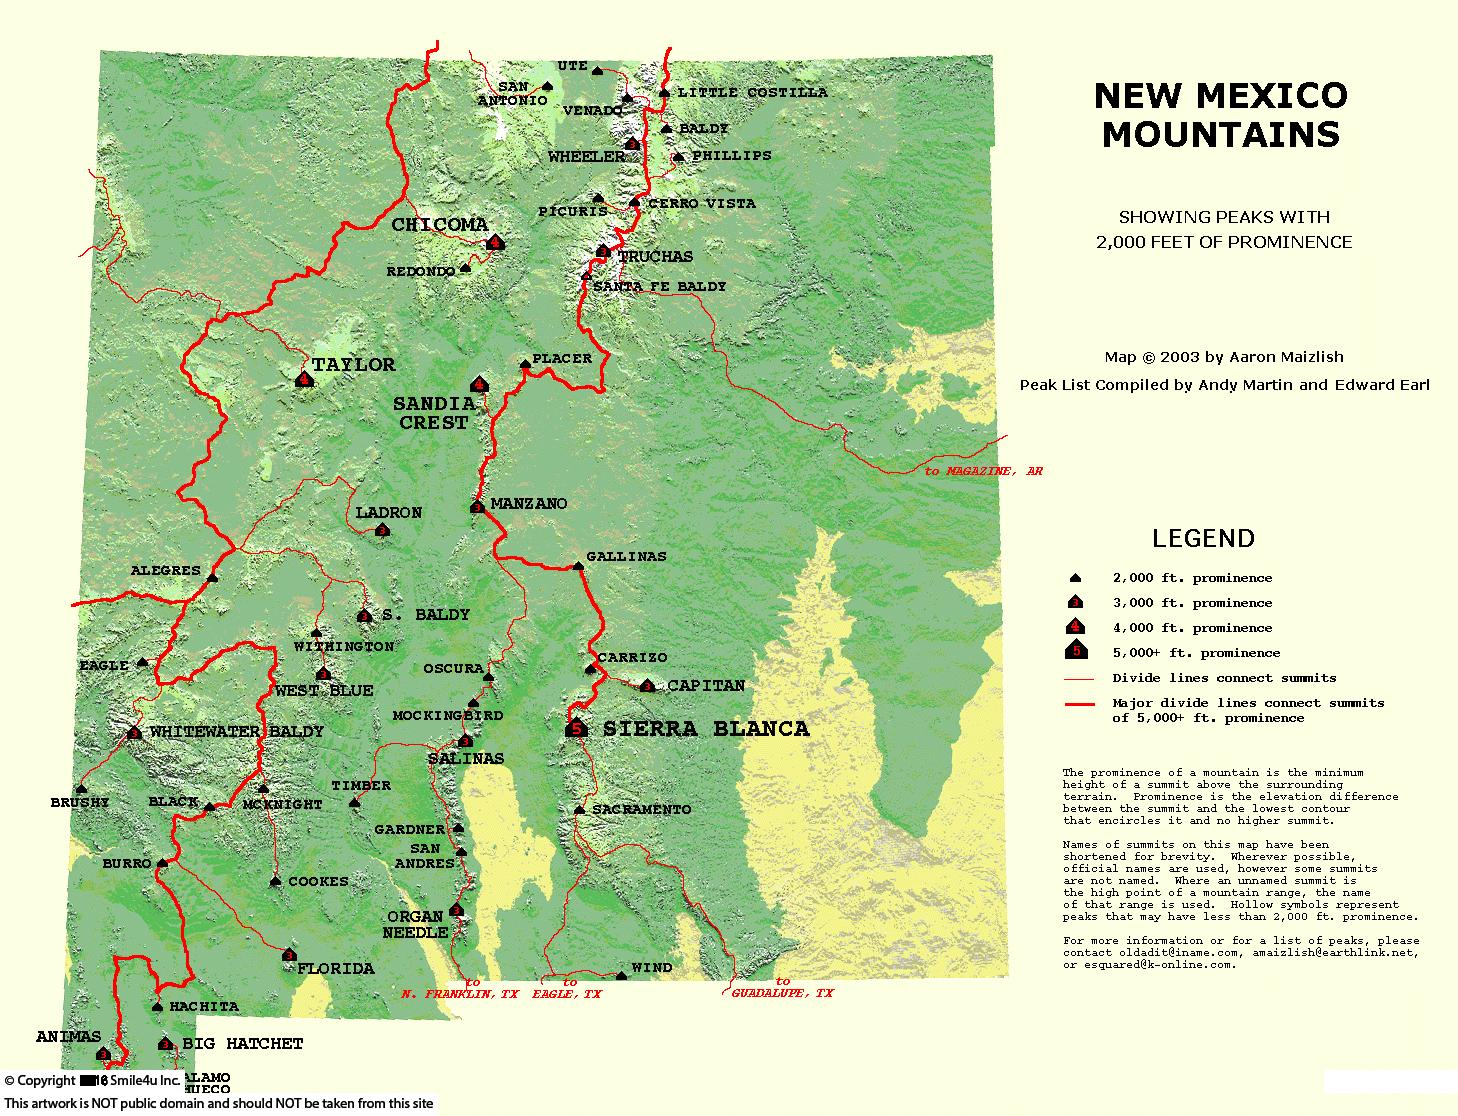 651435_watermarked_newmexicosummits.png